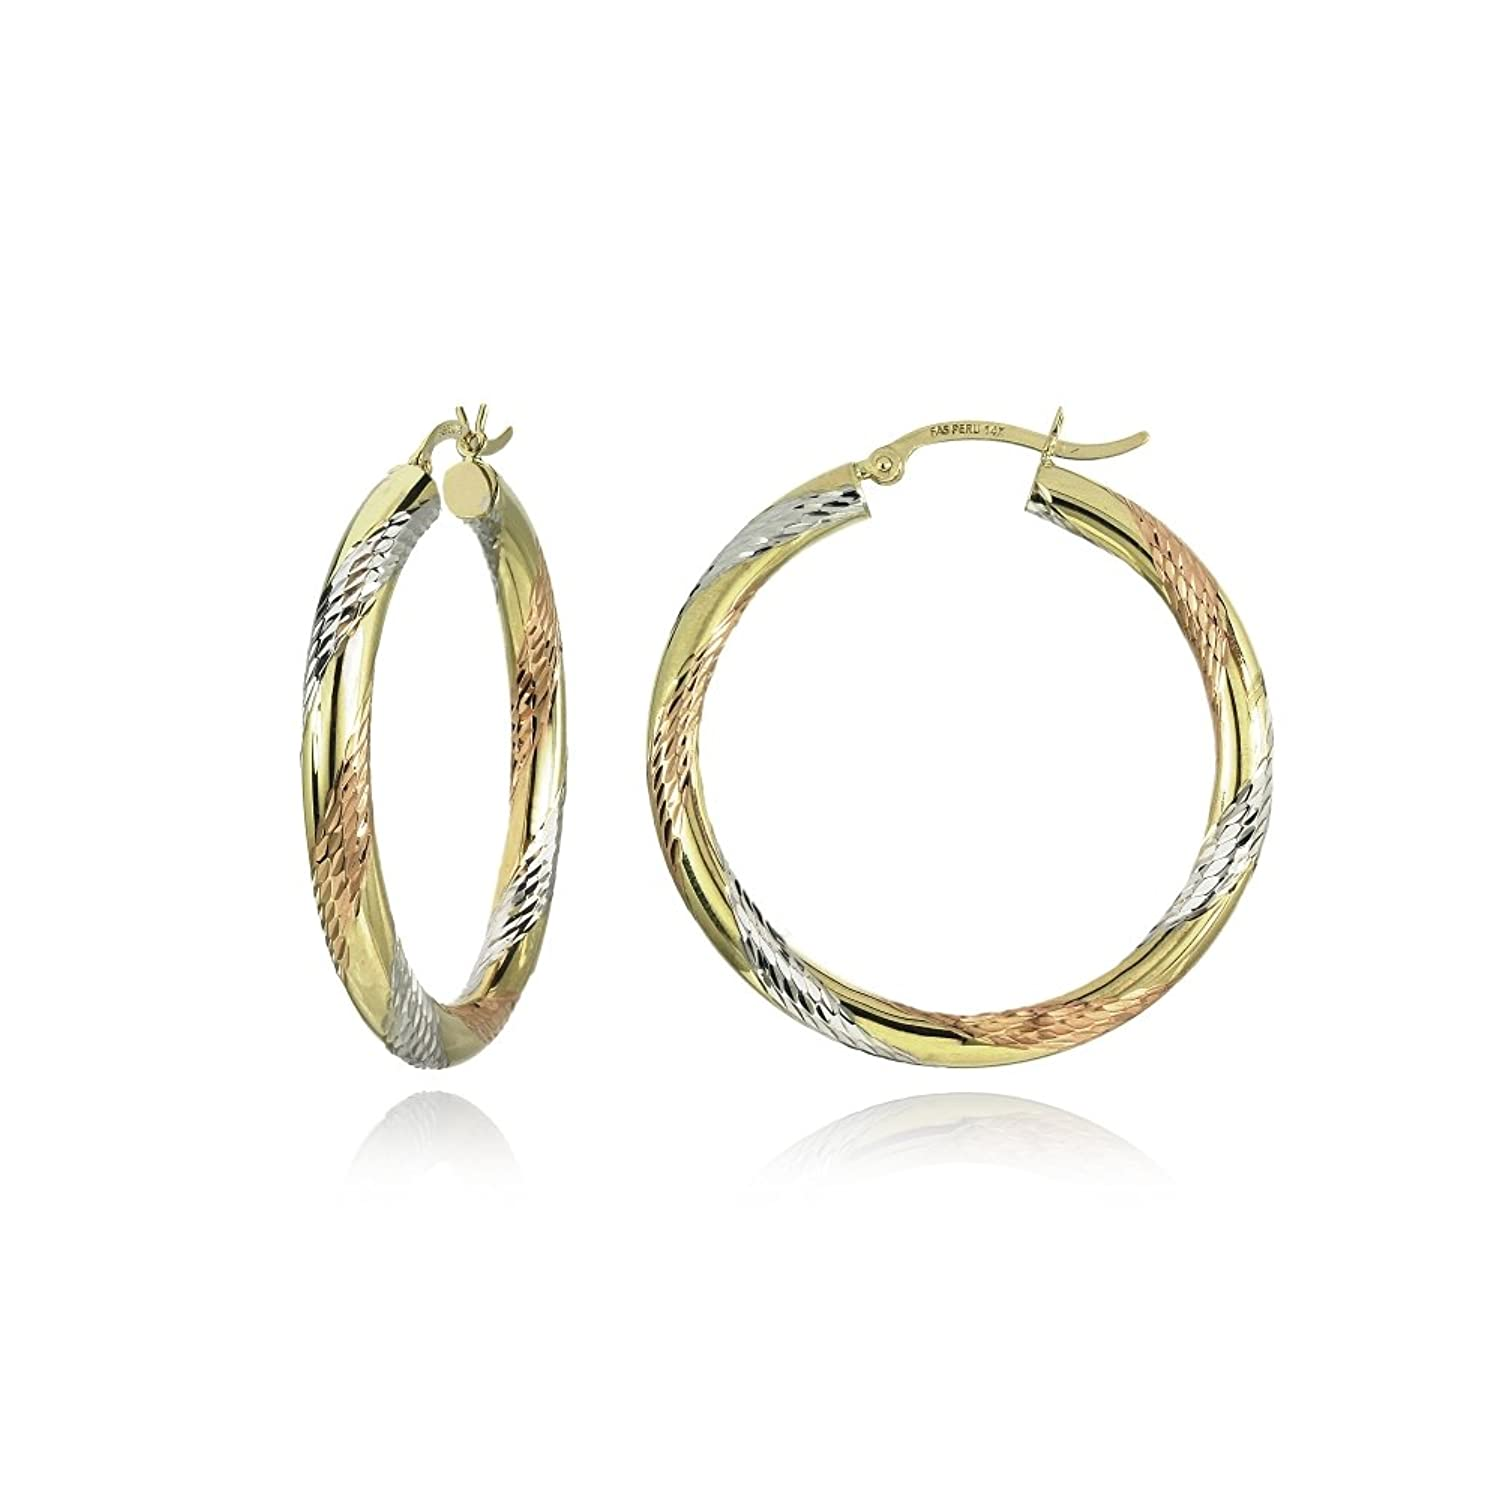 14K Gold Tri Color Polished & Diamond-Cut 3mm Lightweight Round Hoop Earrings, All Sizes